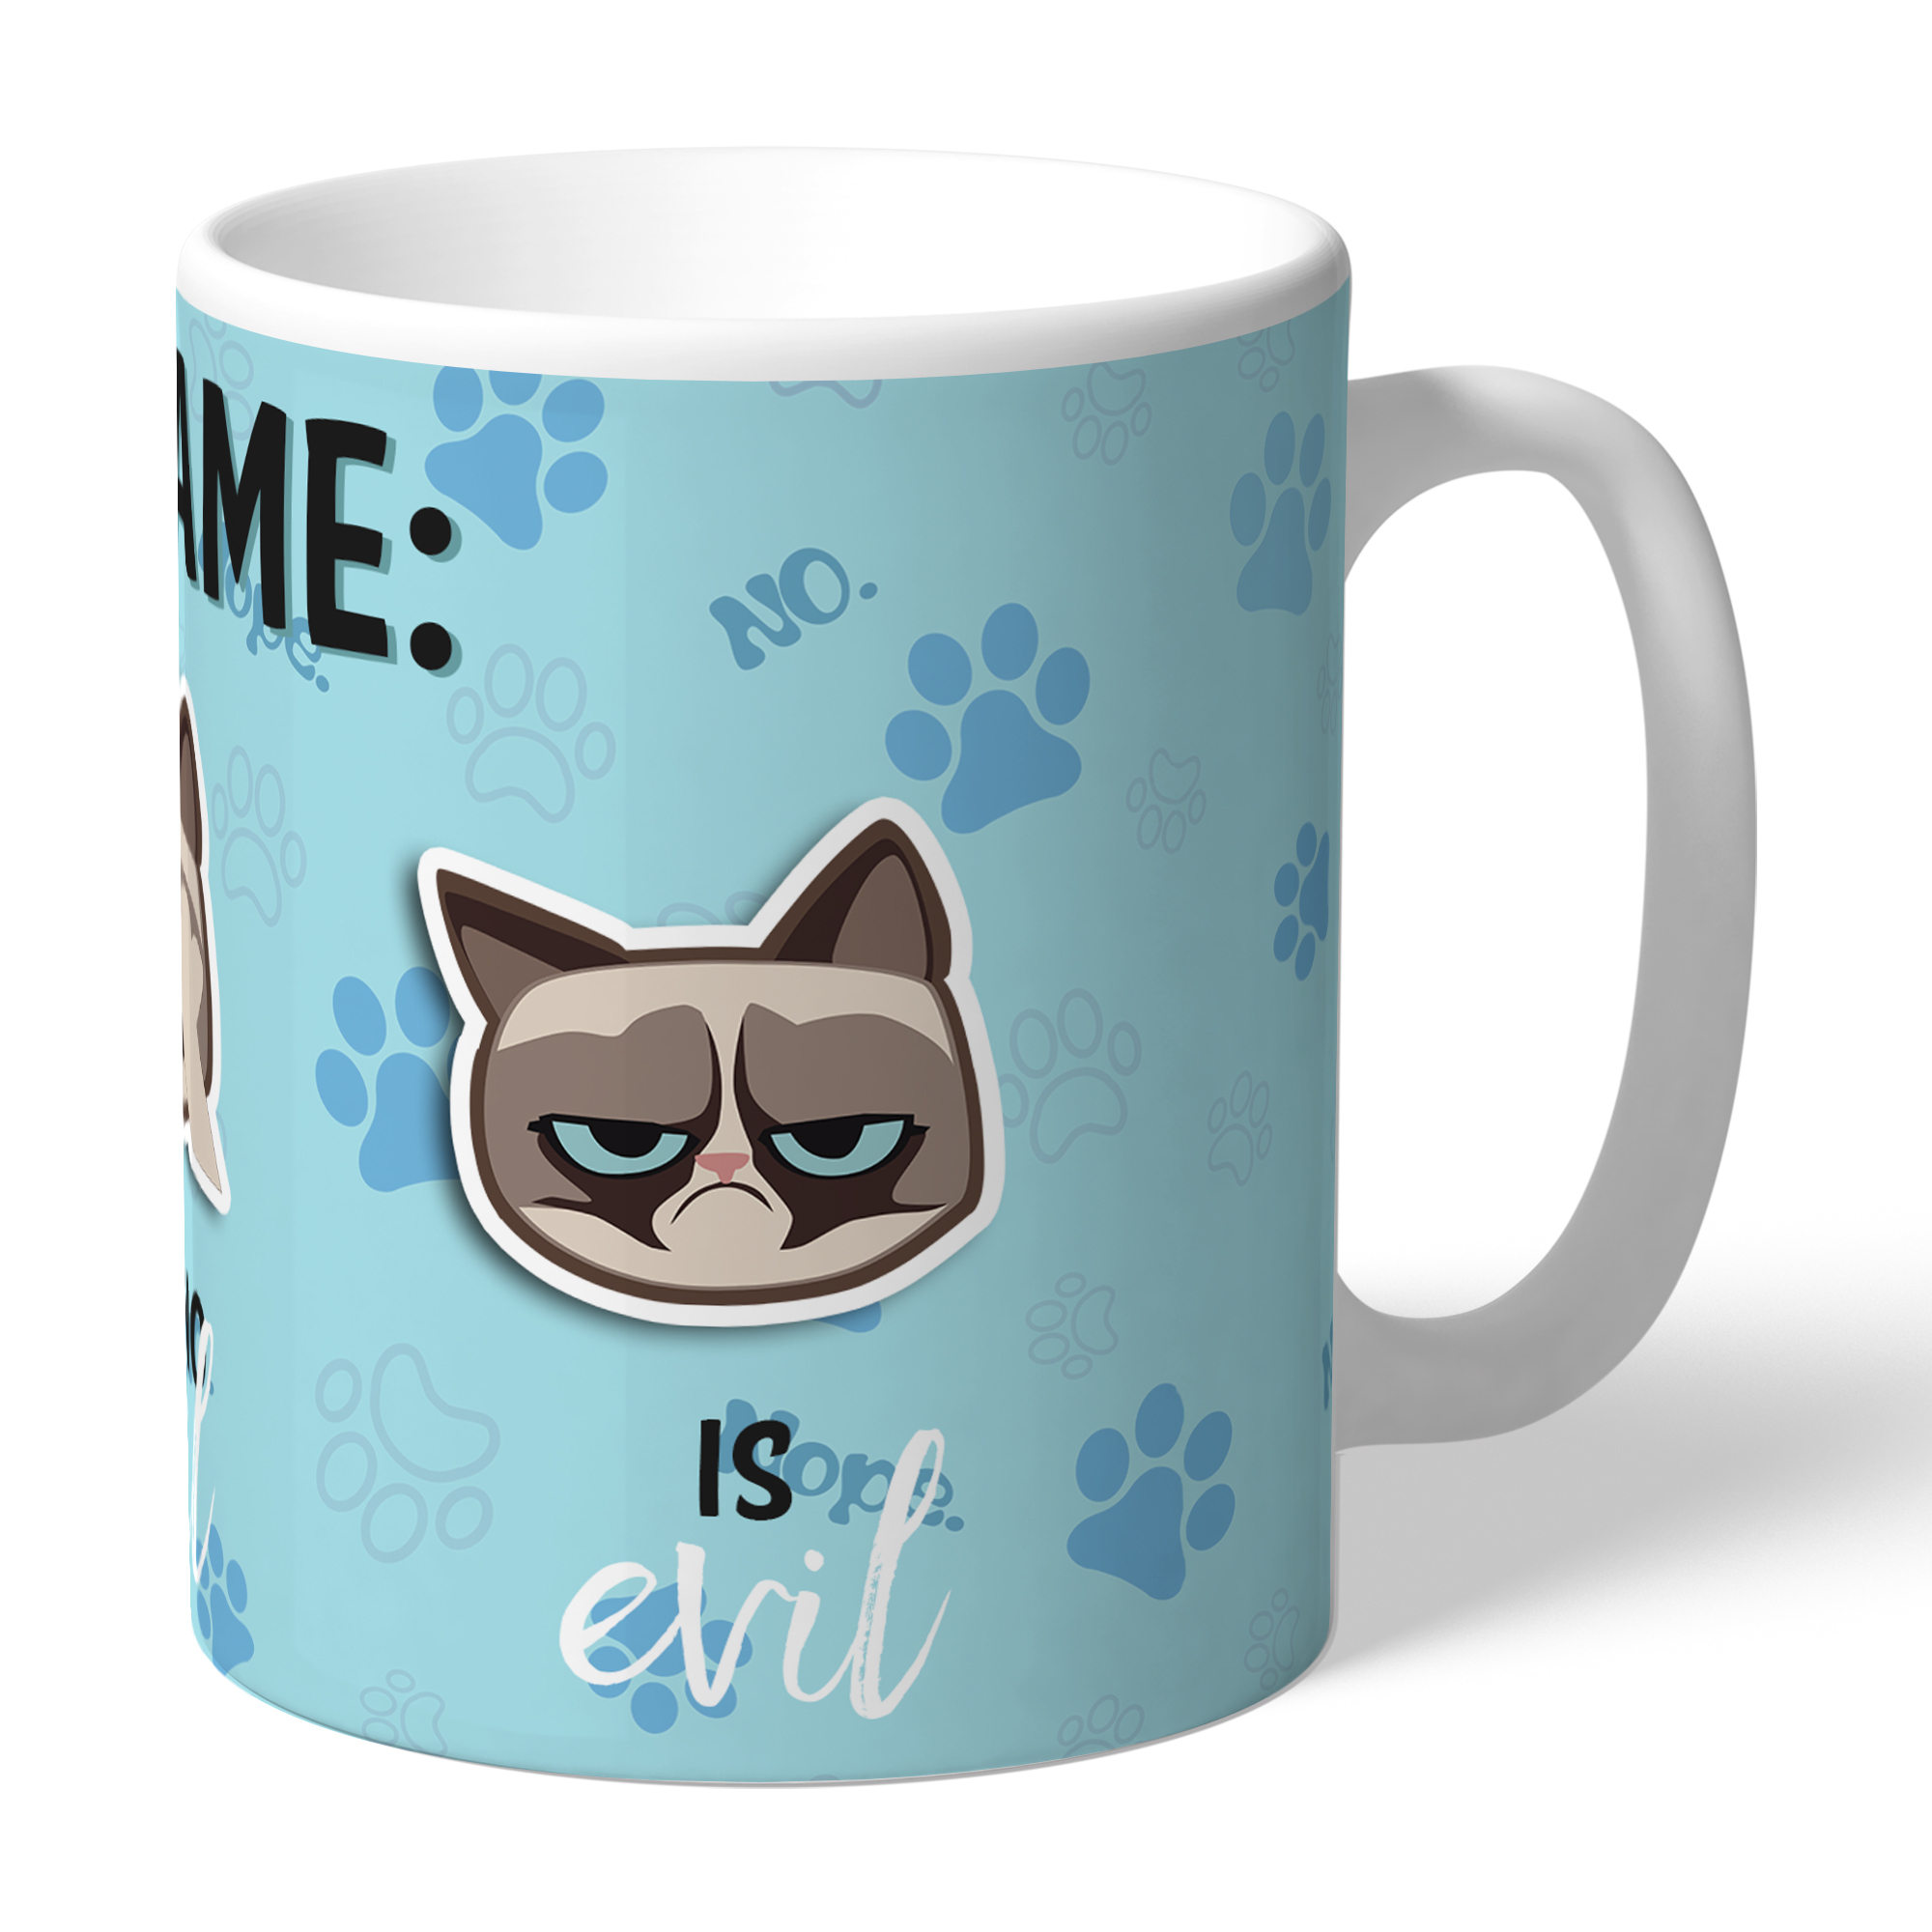 Grumpy Cat Emoji - Three Wise Cats Mug Blue